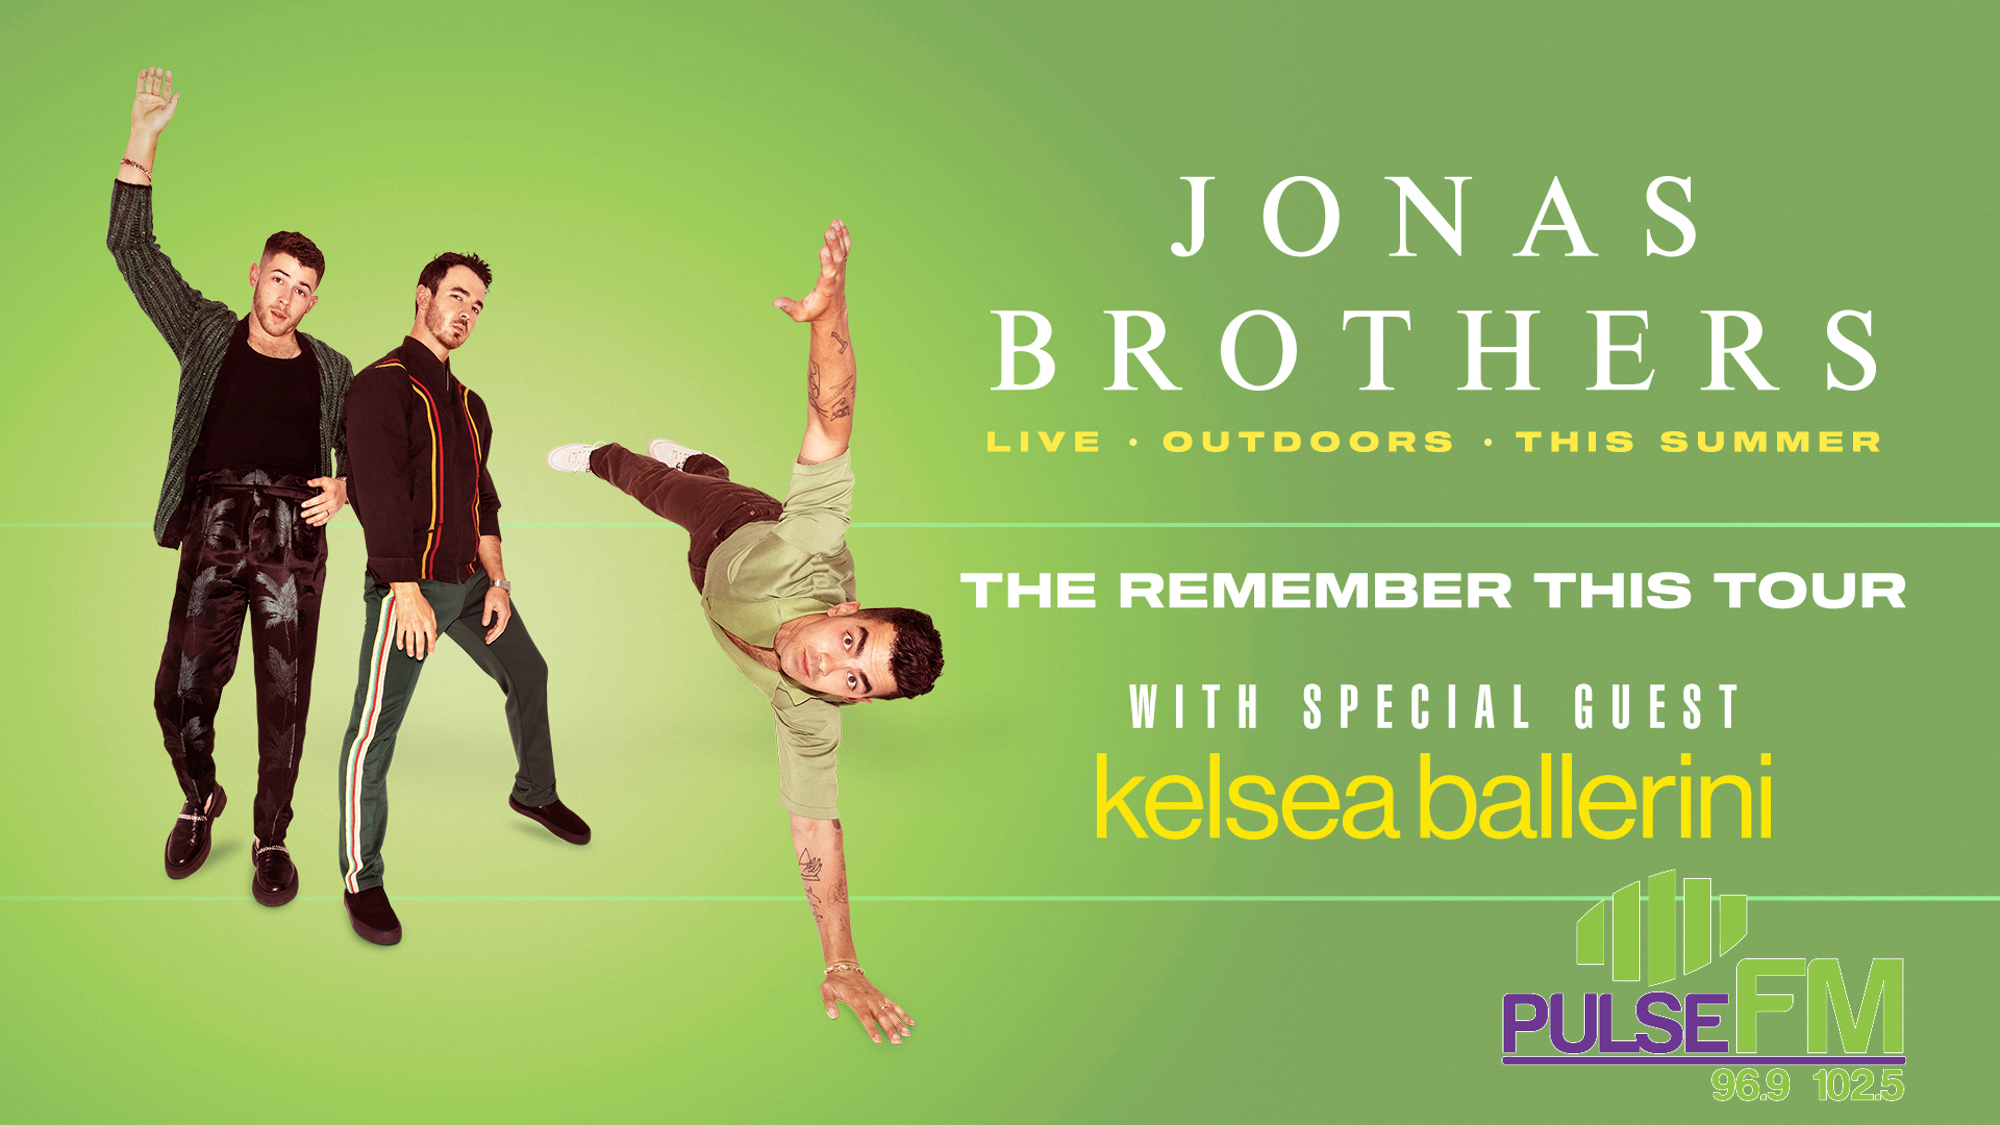 Enter to Win Jonas Brothers Tickets